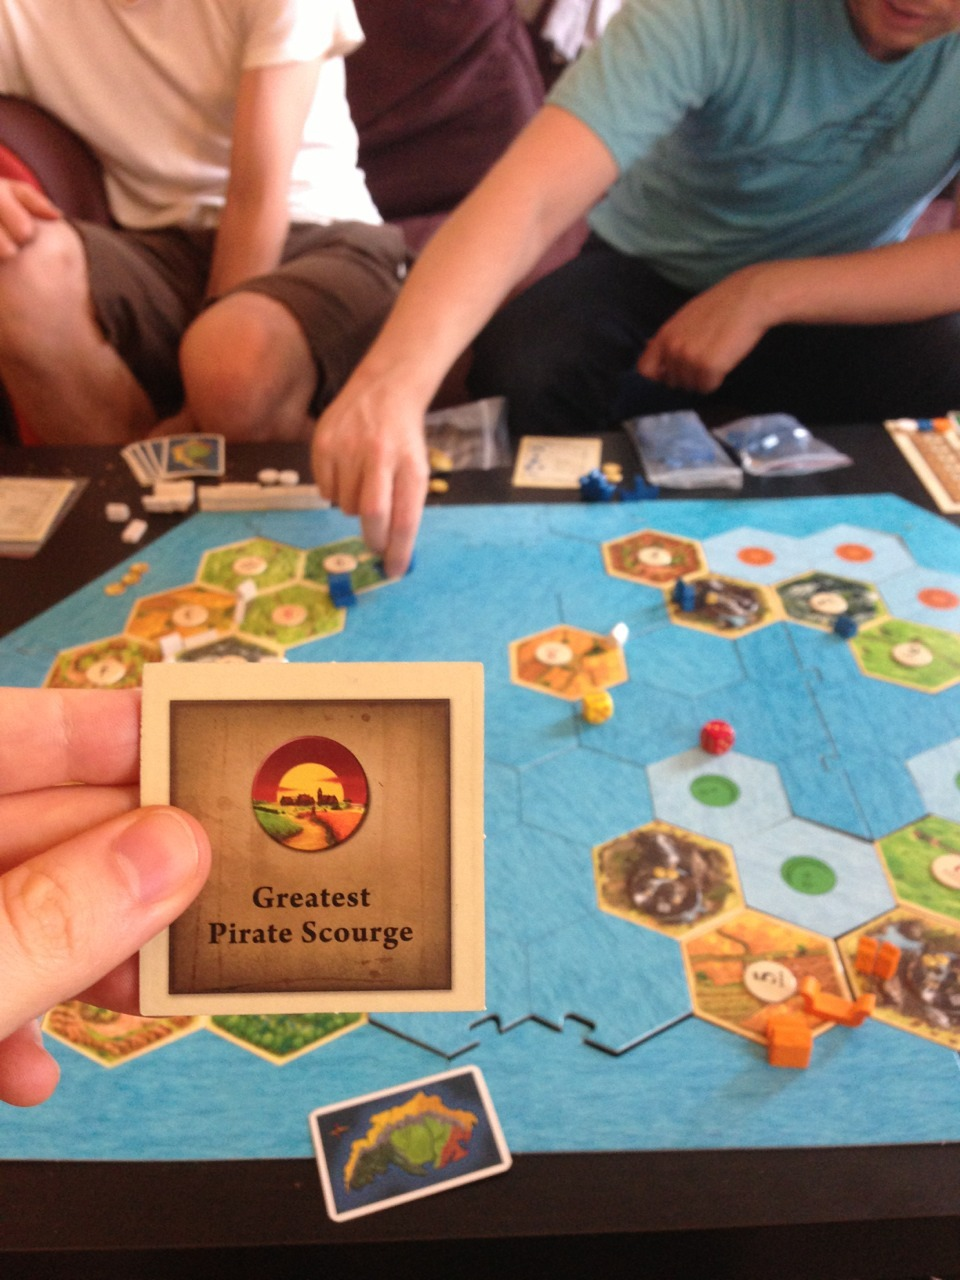 jeffrubinjeffrubin:  Pirates & Explorers, the new Catan expansion.